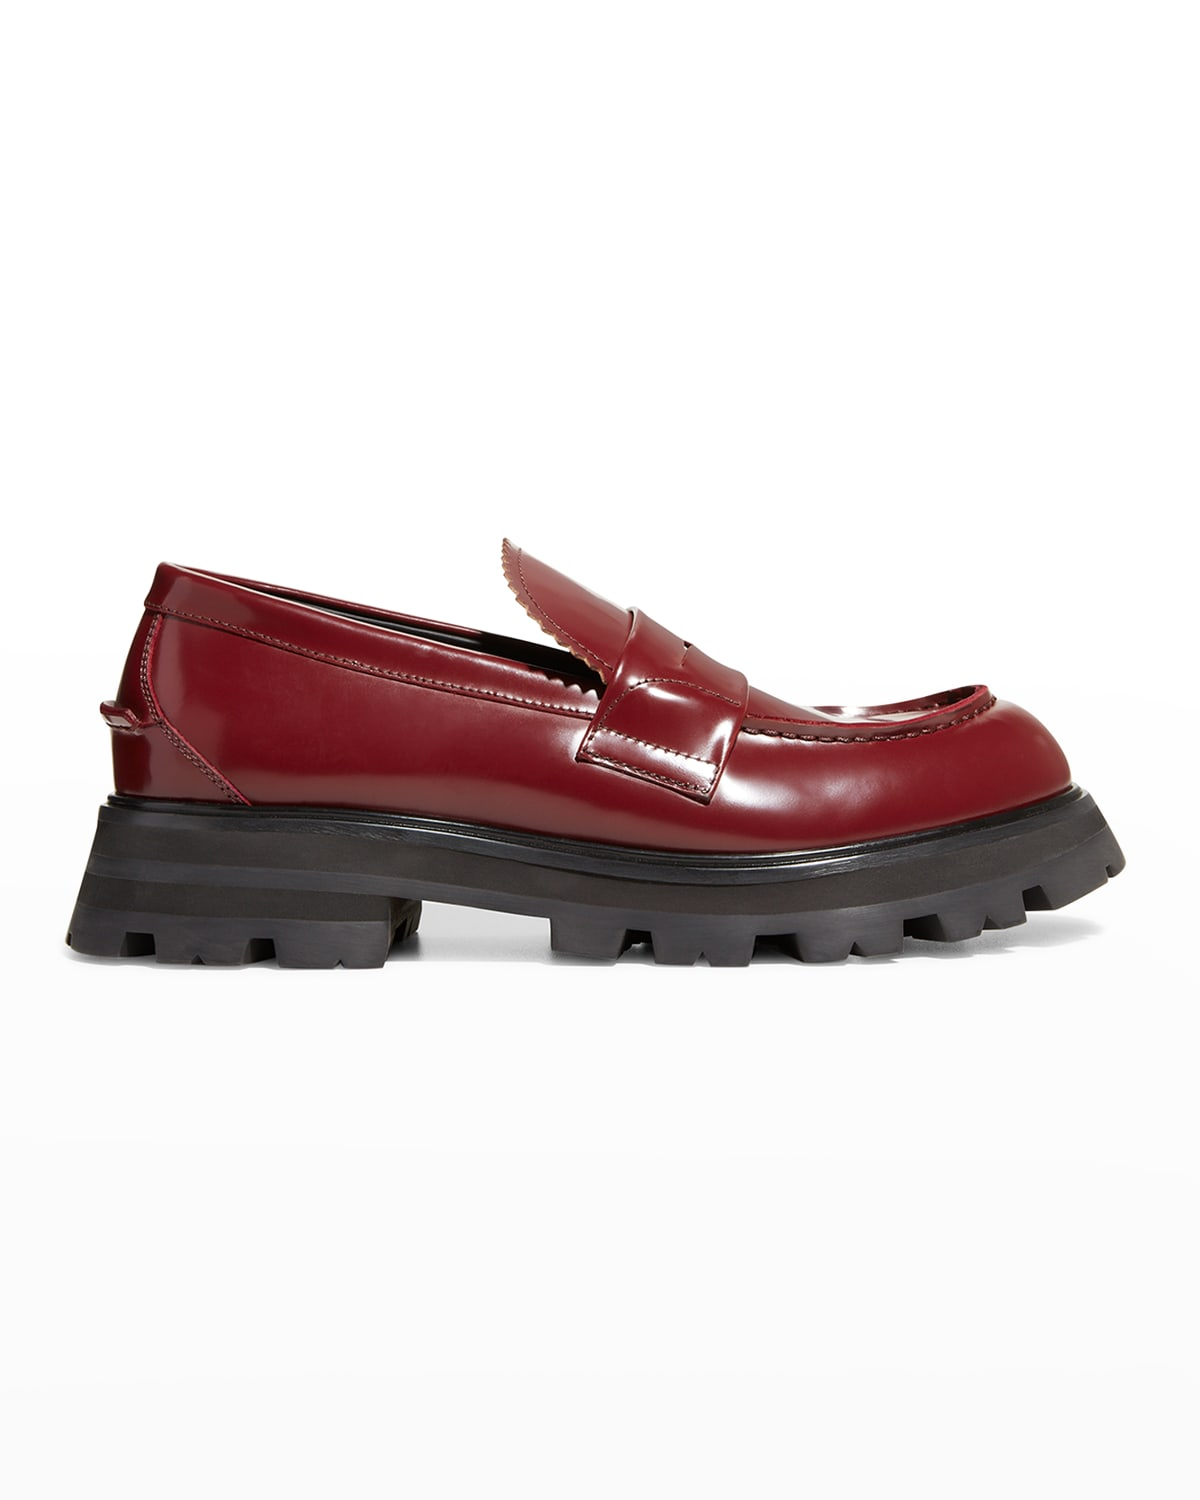 Men's Patent Penny Loafers